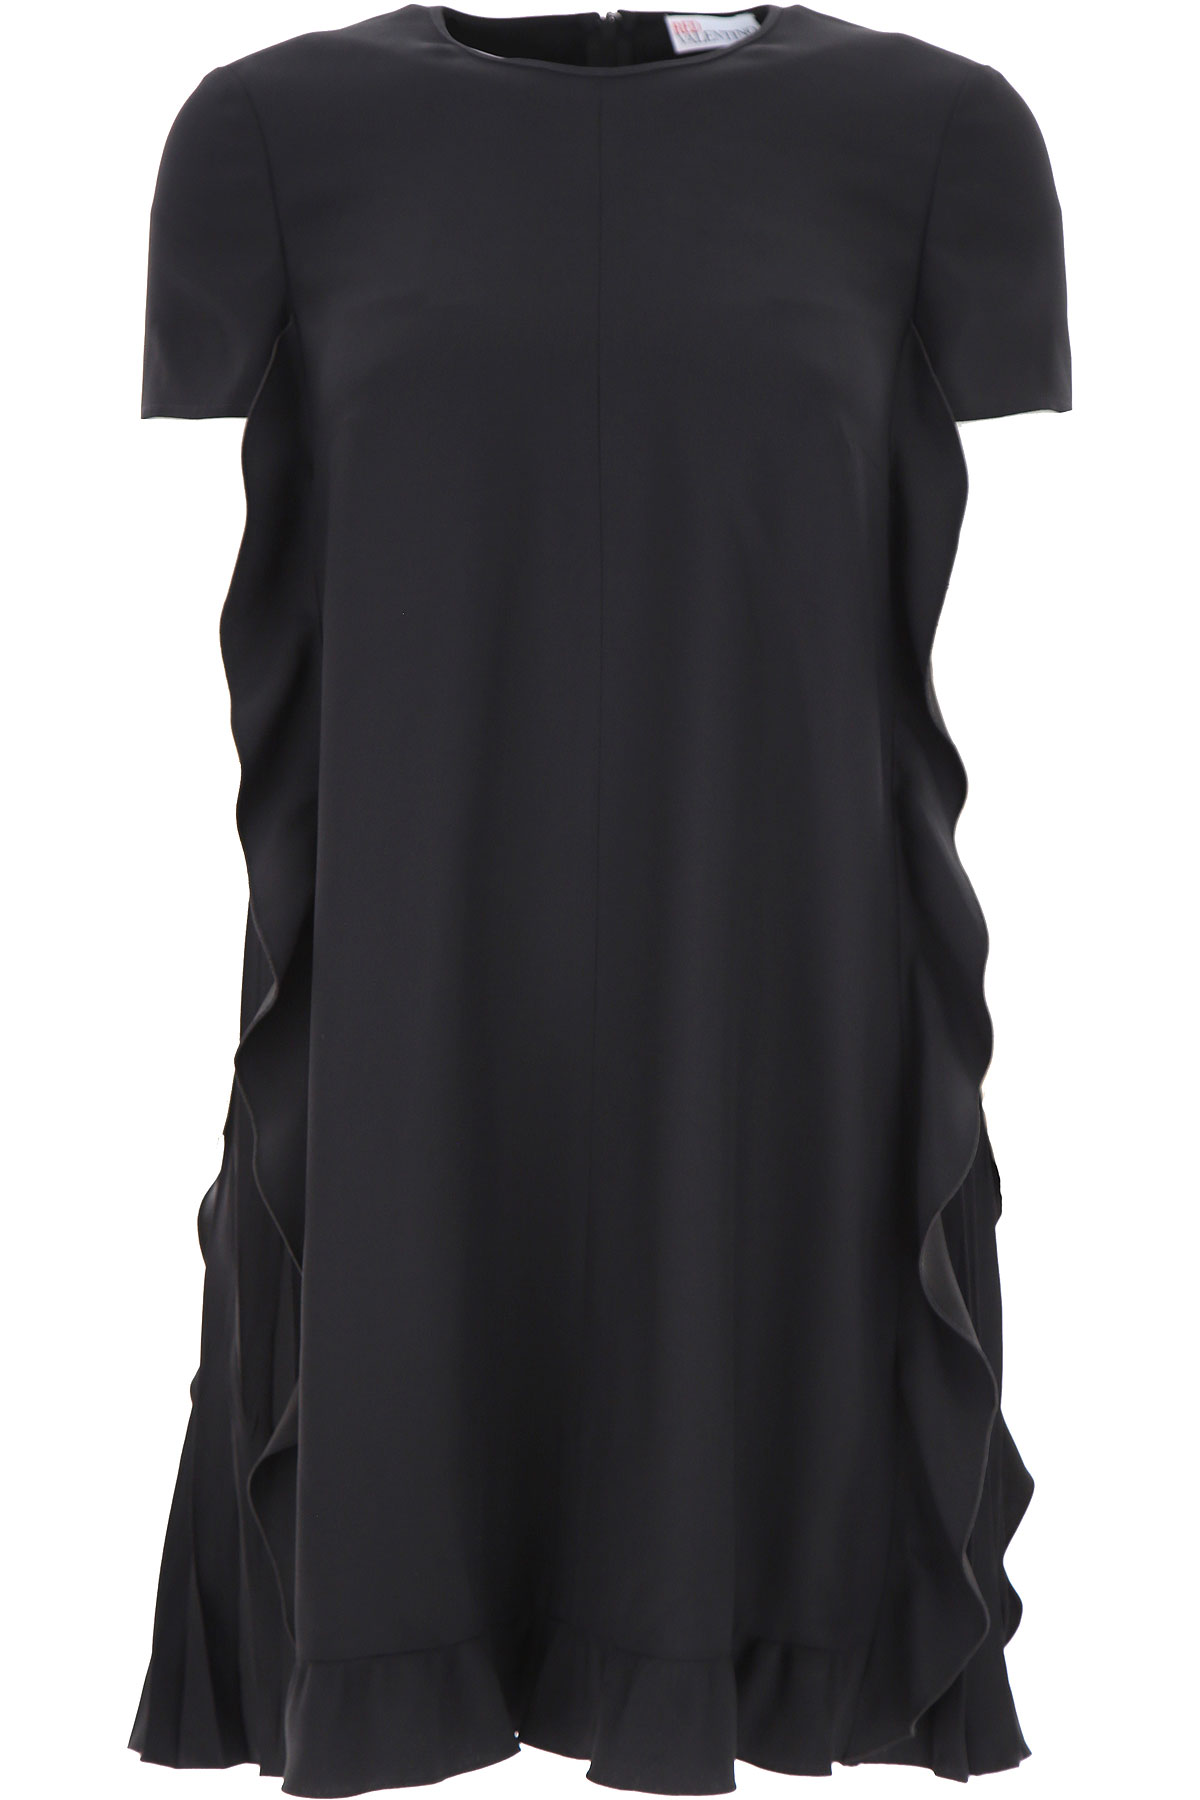 RED Valentino Dress for Women, Evening Cocktail Party On Sale, Black, acetate, 2019, 2 4 6 8